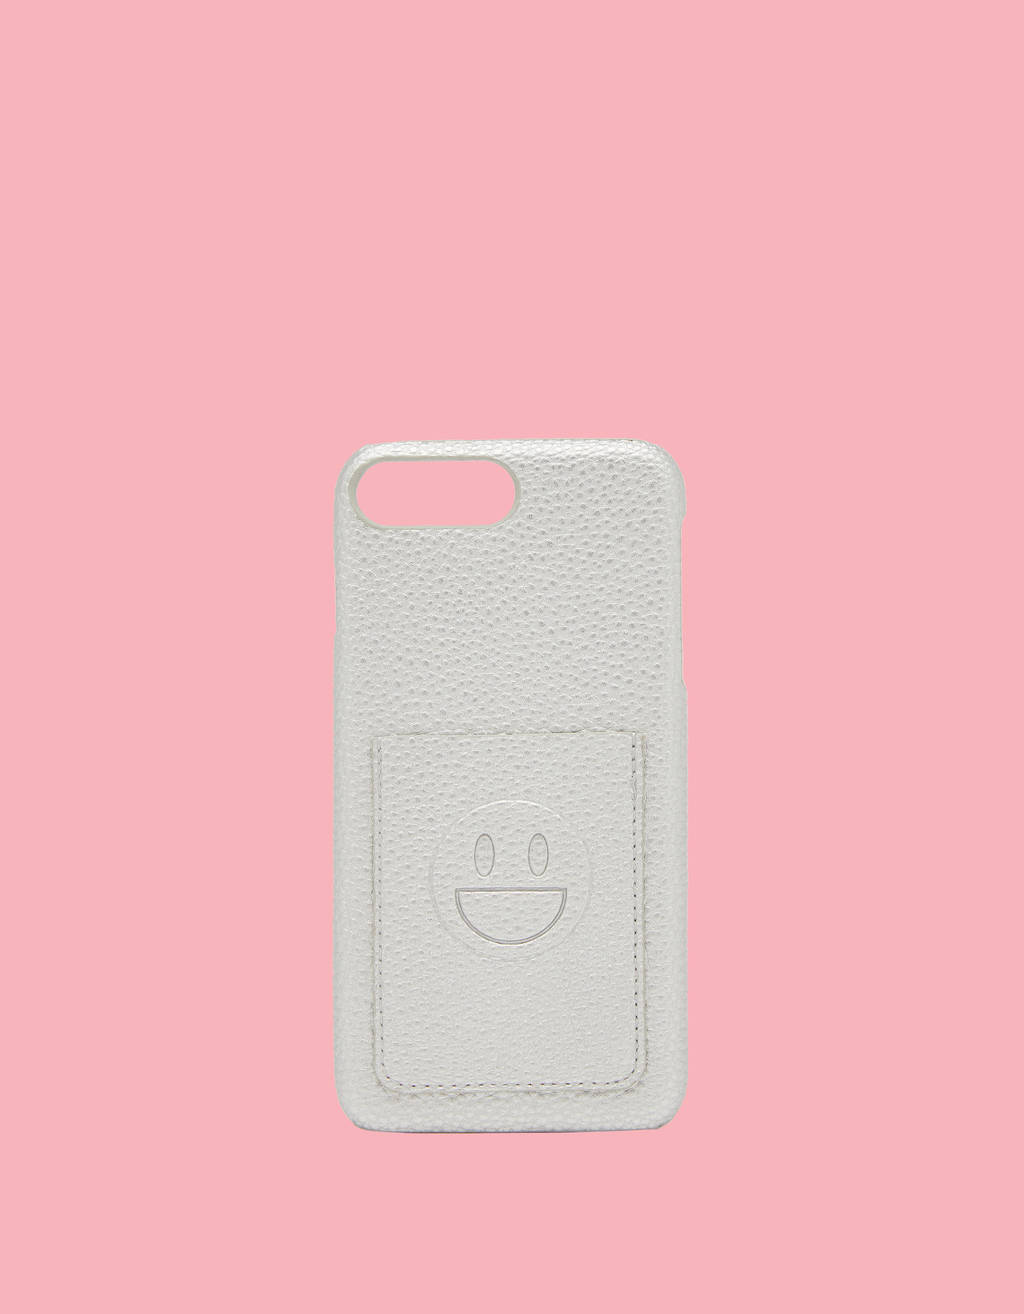 Smile case for iPhone 6 Plus / 7 Plus / 8 Plus